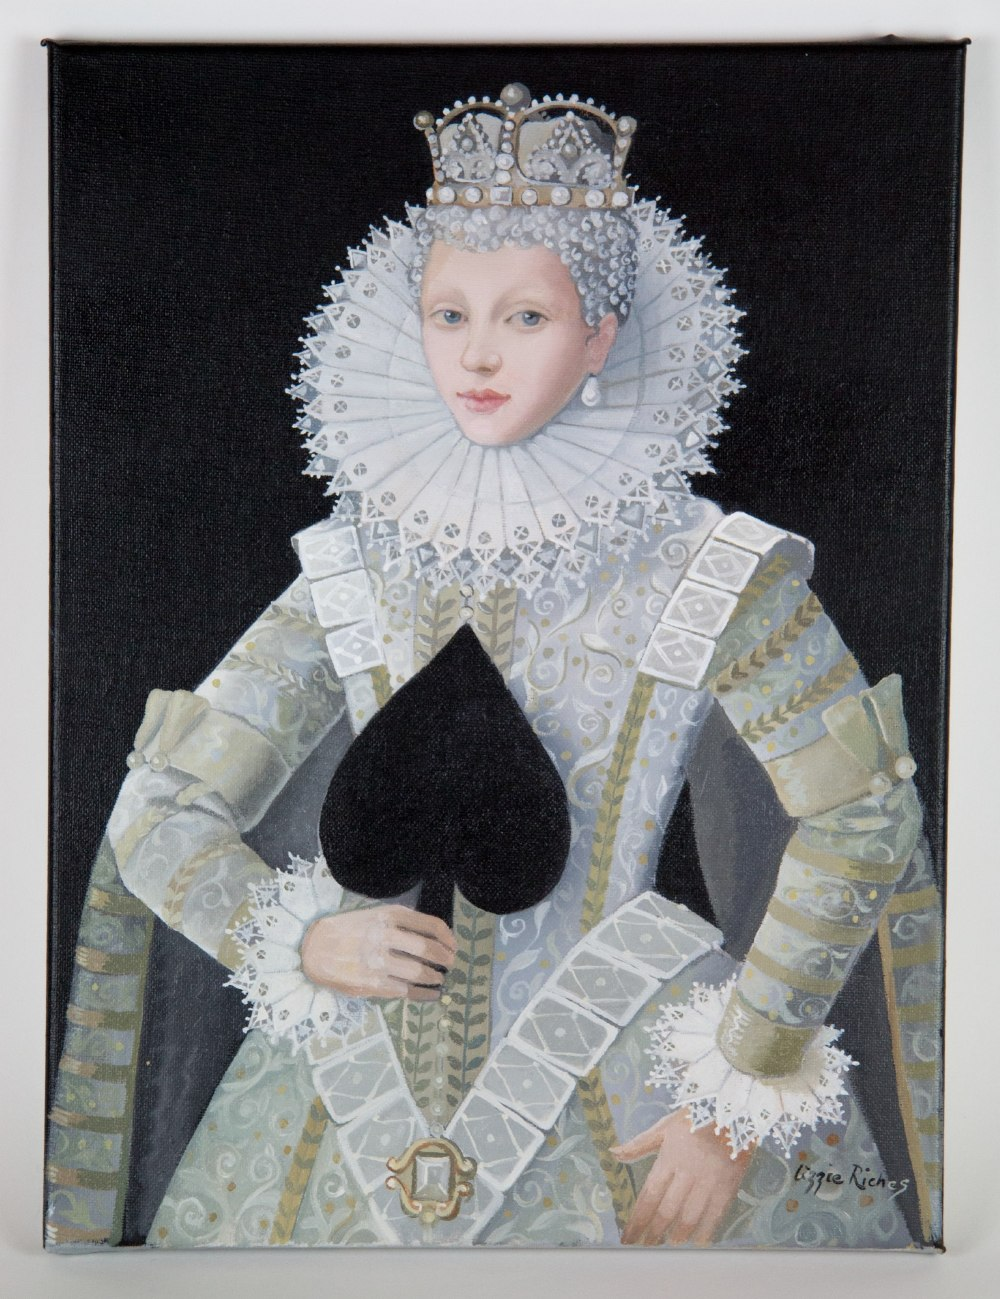 Lizzie Riches (British, b.1950). 'Queen of Spades'. Oil on canvas, signed. 40 x 30cm. I was born